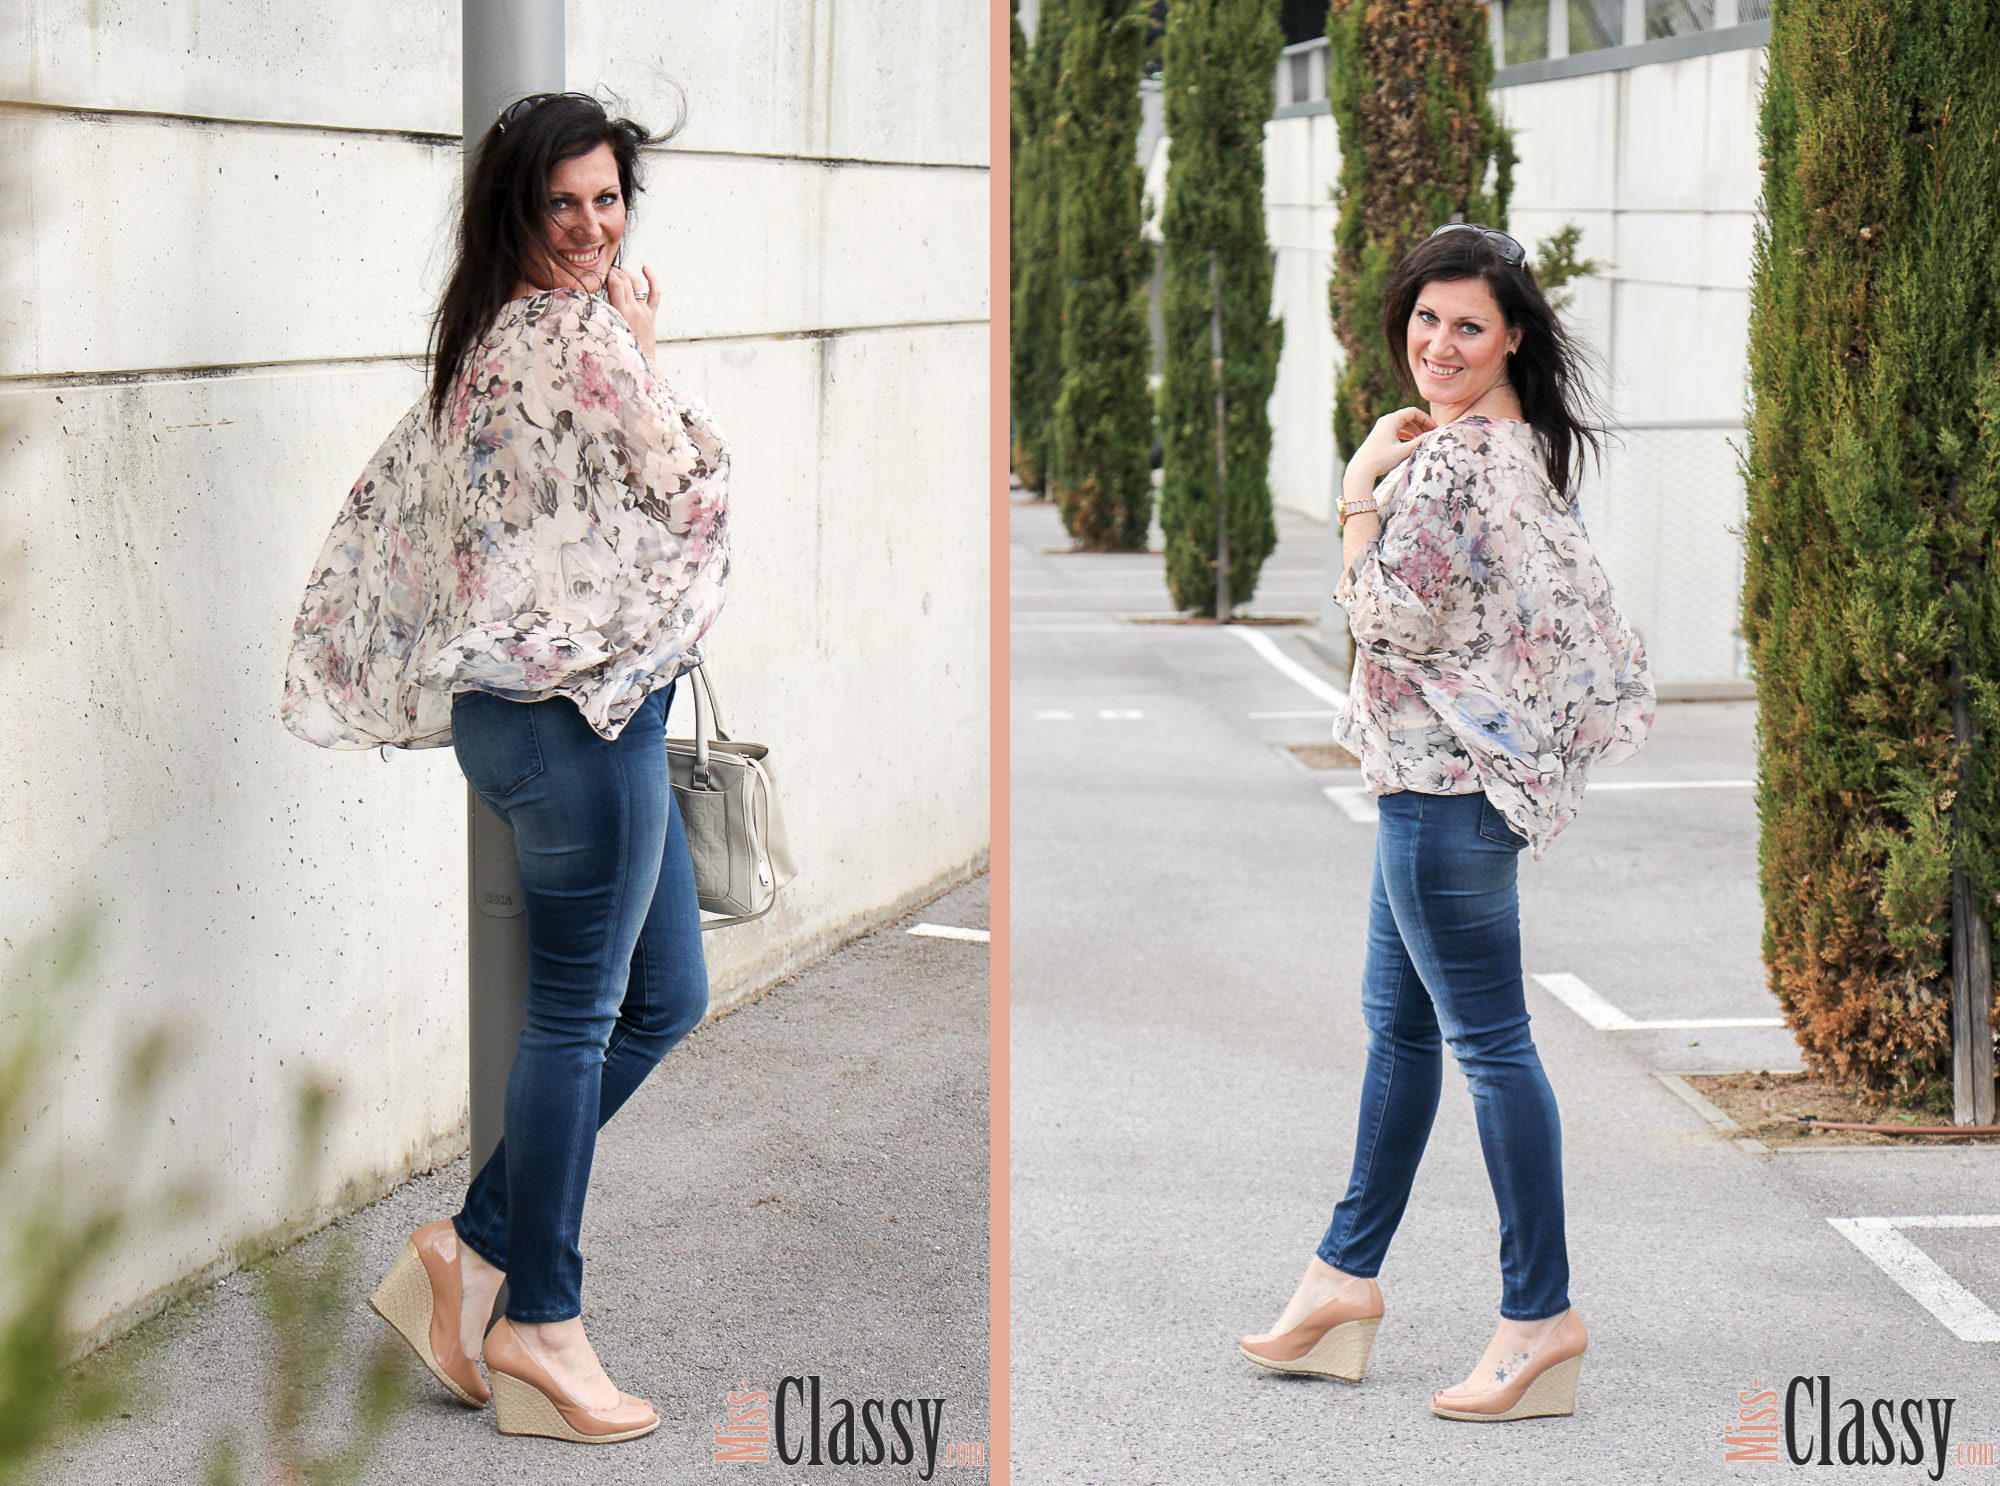 OUTFIT Blumenprint Blouson und Poncho-Bluse von Betty Barcley, Miss Classy, miss-classy.com, Fashionblog, Fashionblogger, Fashionblog Graz, Lifestyleblog Graz, Graz, Steiermark, Österreich, classy, beclassy, classy Fashion, Outfit, Style, Fashion, Mode, OOTD, Betty Barclay, Cartoon, Sonnenbrille Vogue, Handtasche Calvin Klein, Michael Kors, Wedges, Blumenprint